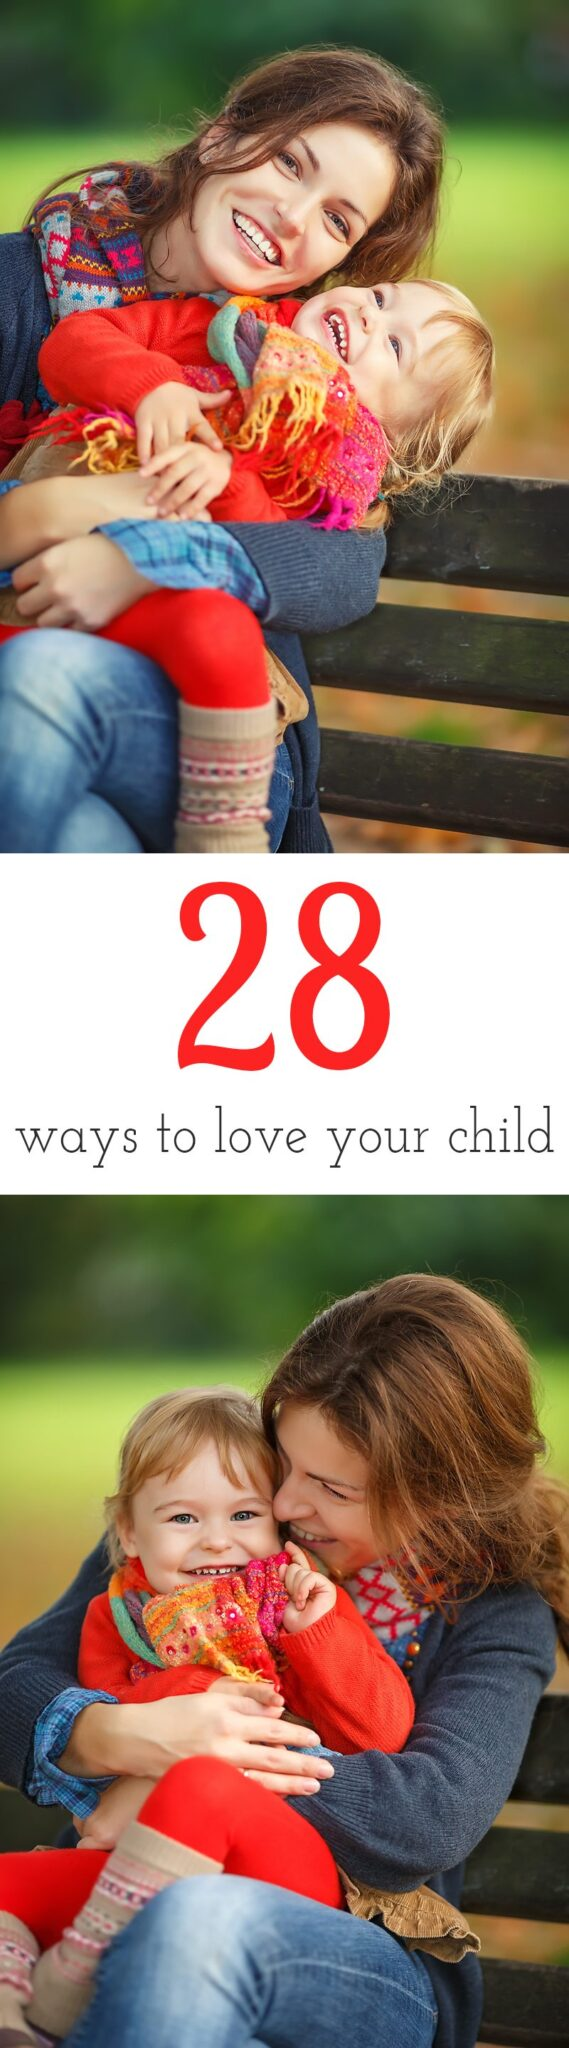 Celebrate family, love, and friendship with our list, 28 Ways to Love Your Child. These sweet ideas will delight children of all ages!